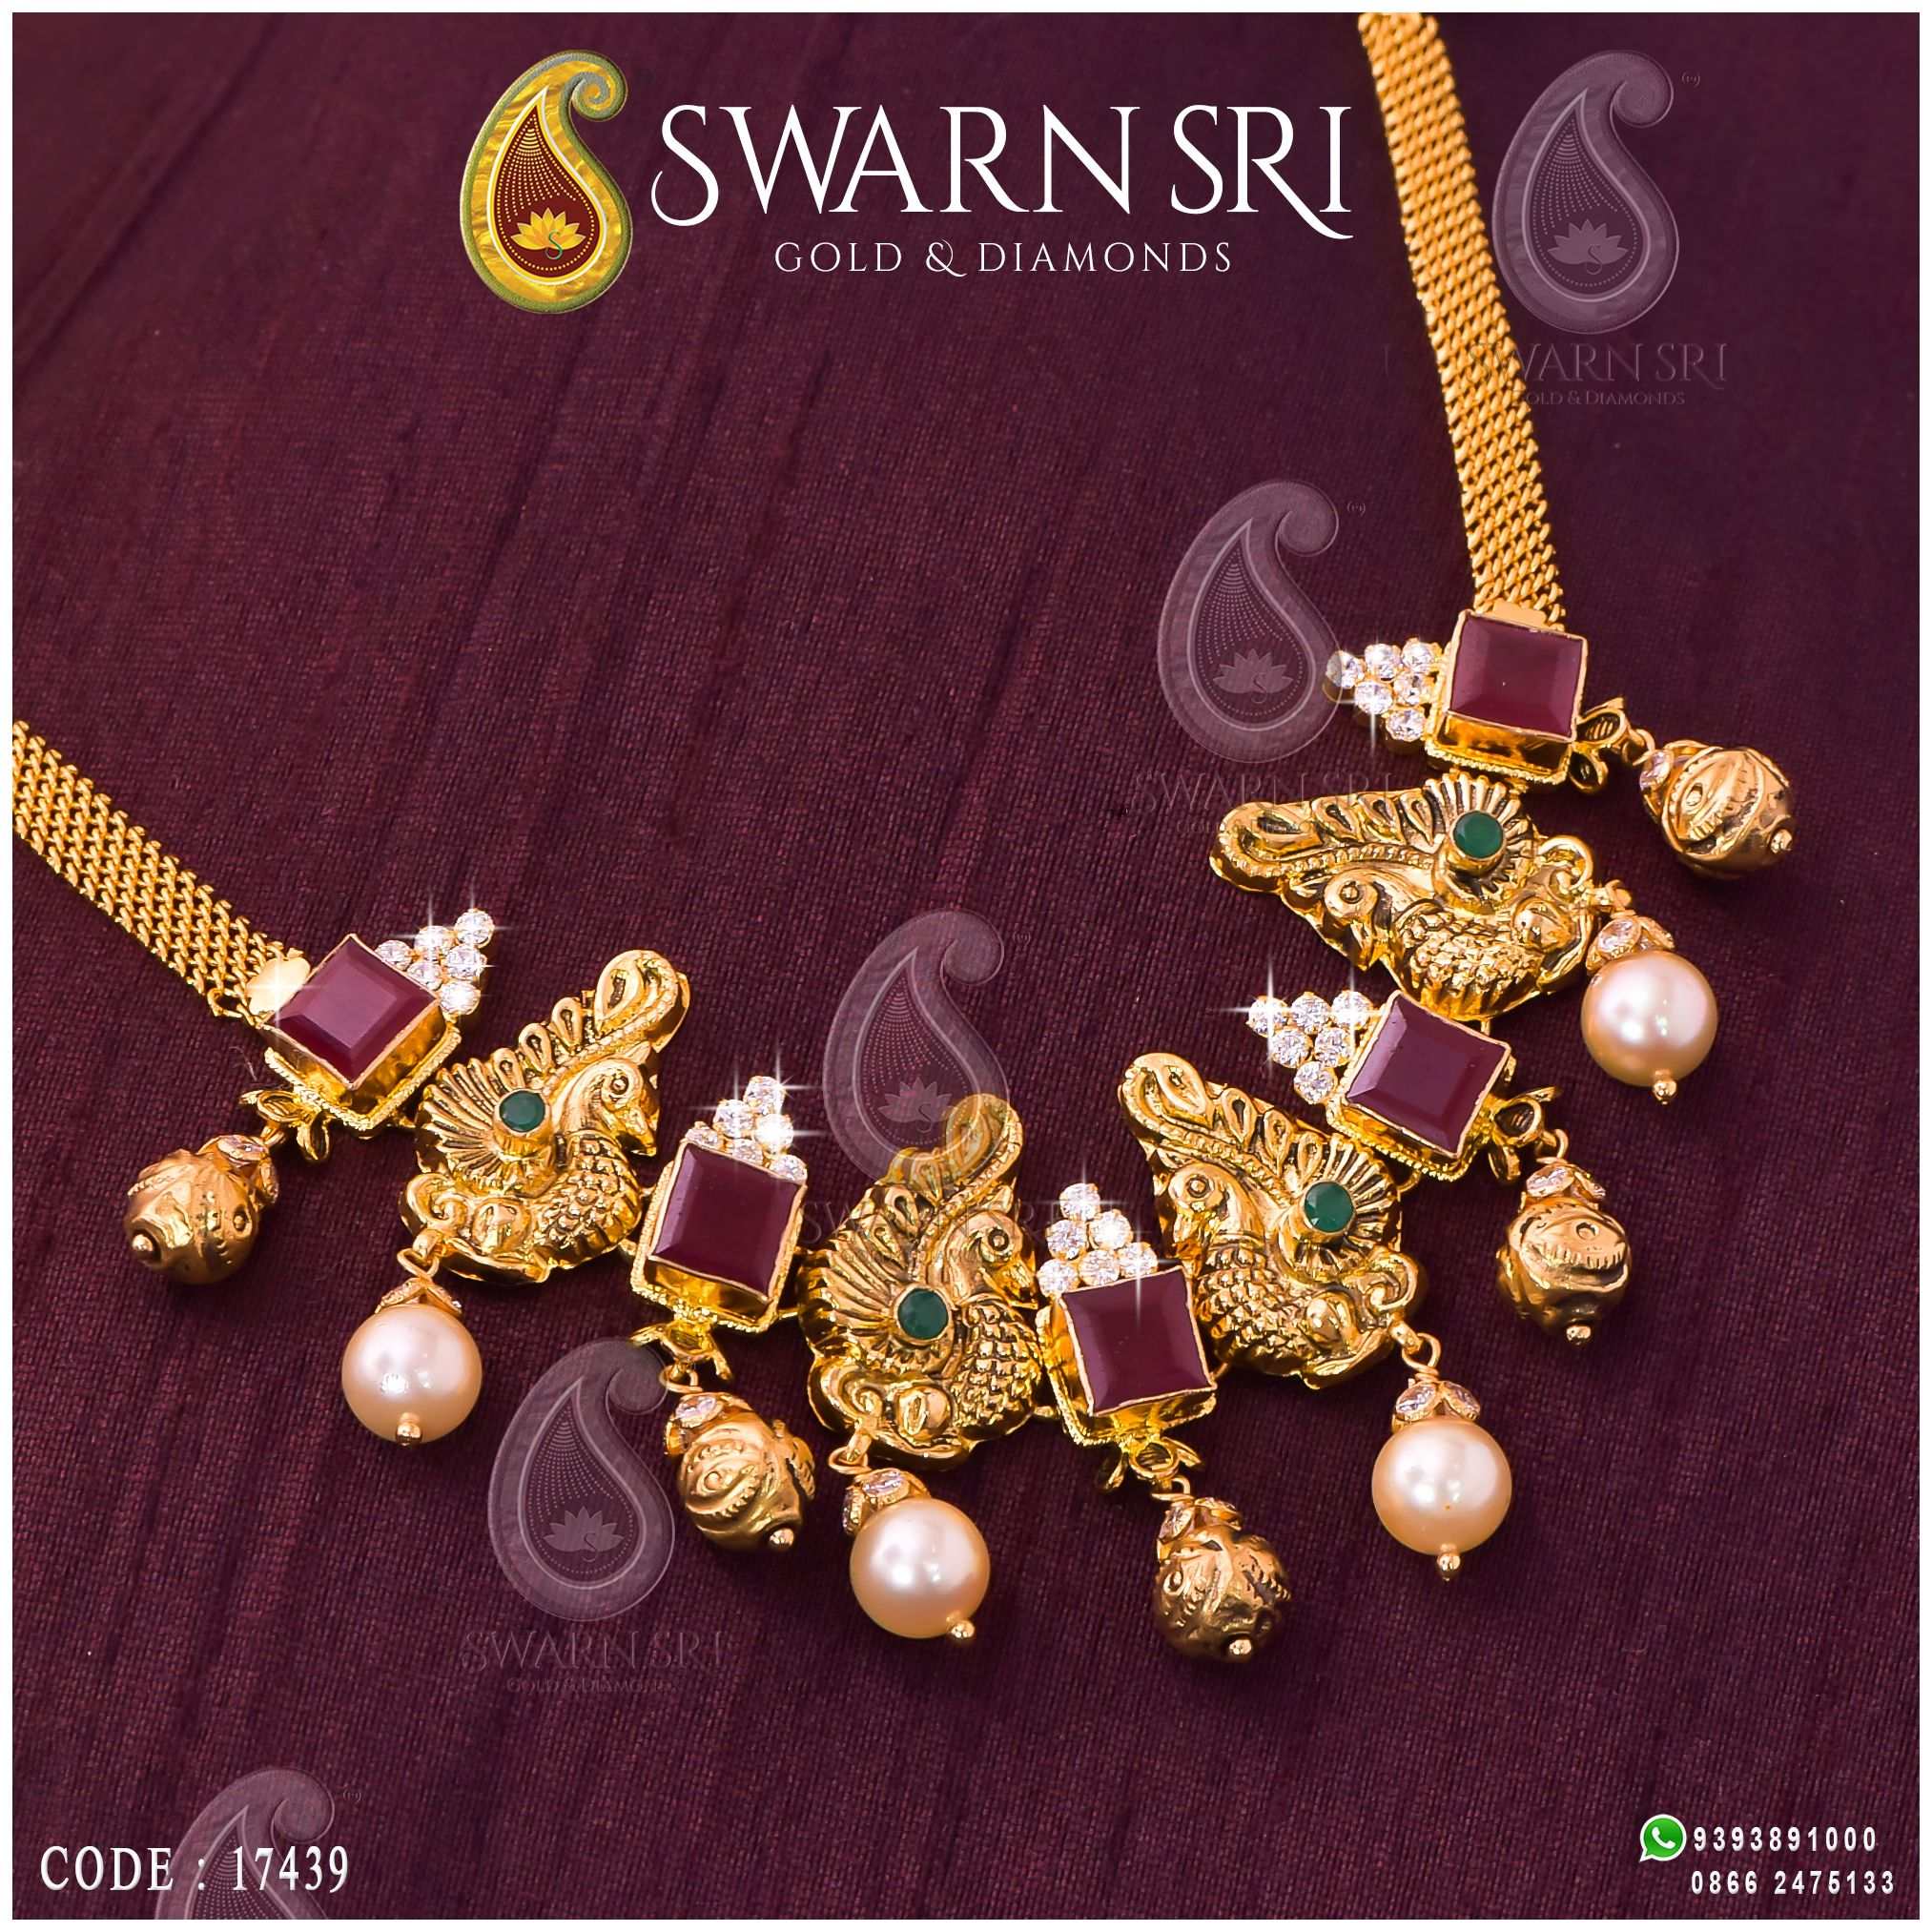 f01907e06 Adorable Peacock Necklace with square shape rubies and Swarovski stones,  the necklace adorned with South Sea Pearls and Nakshi balls, #necklace  weight ...